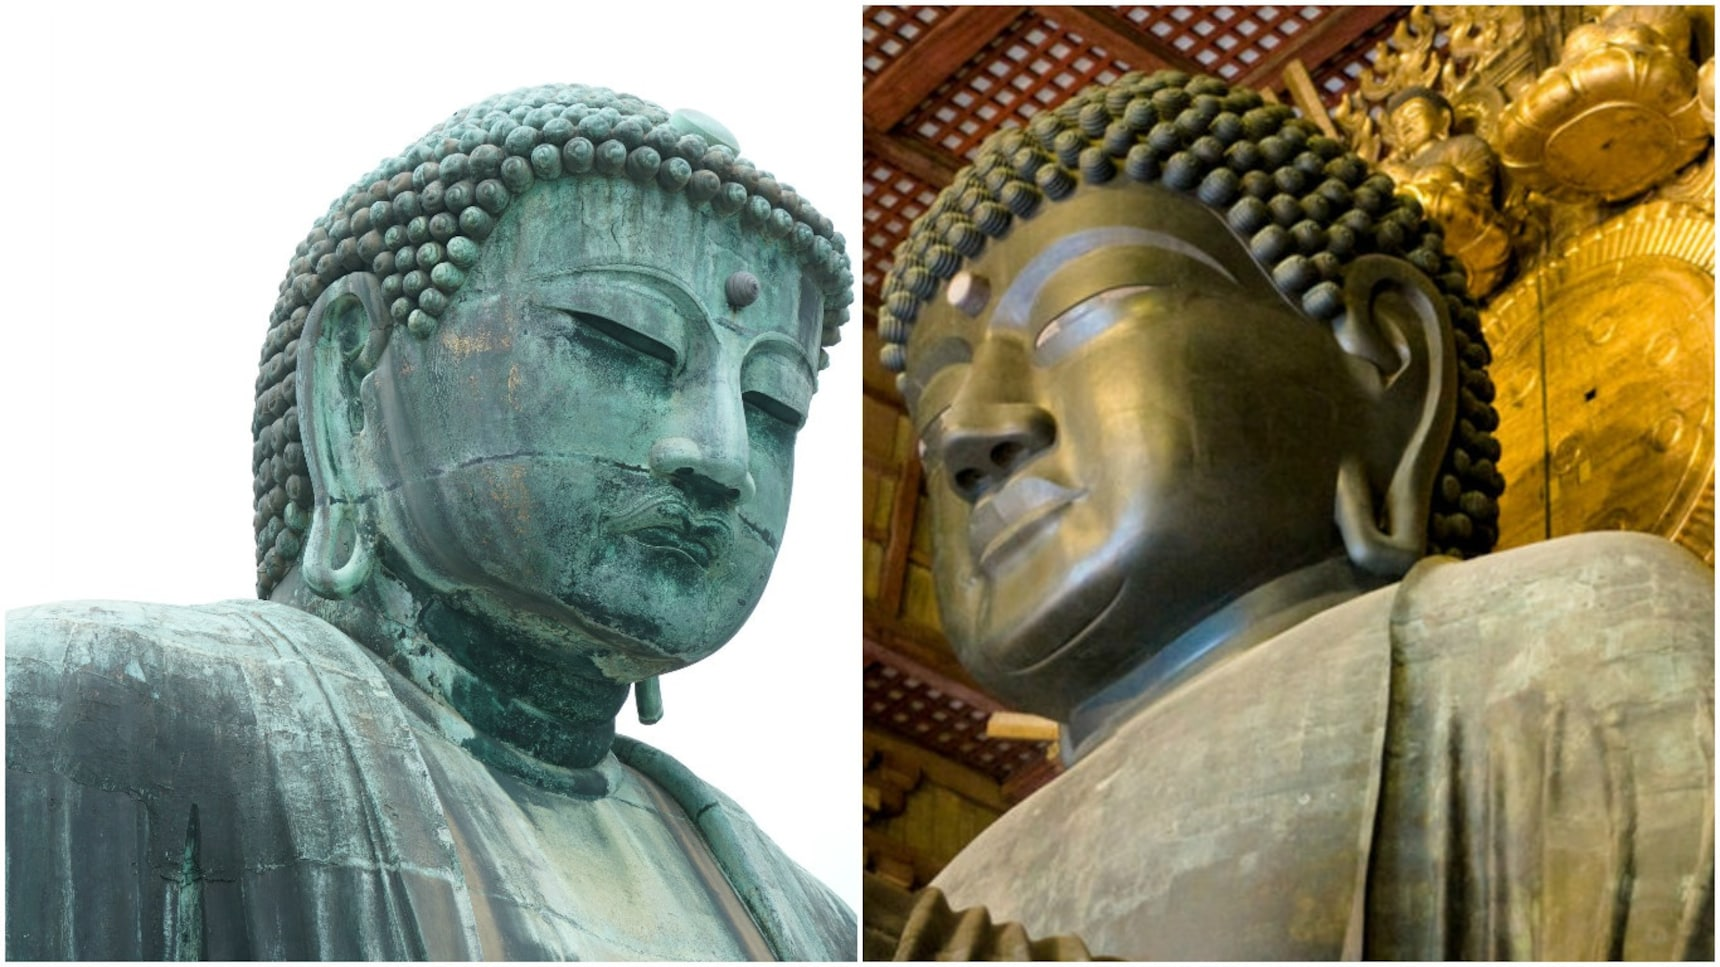 Battle of the Big Buddhas